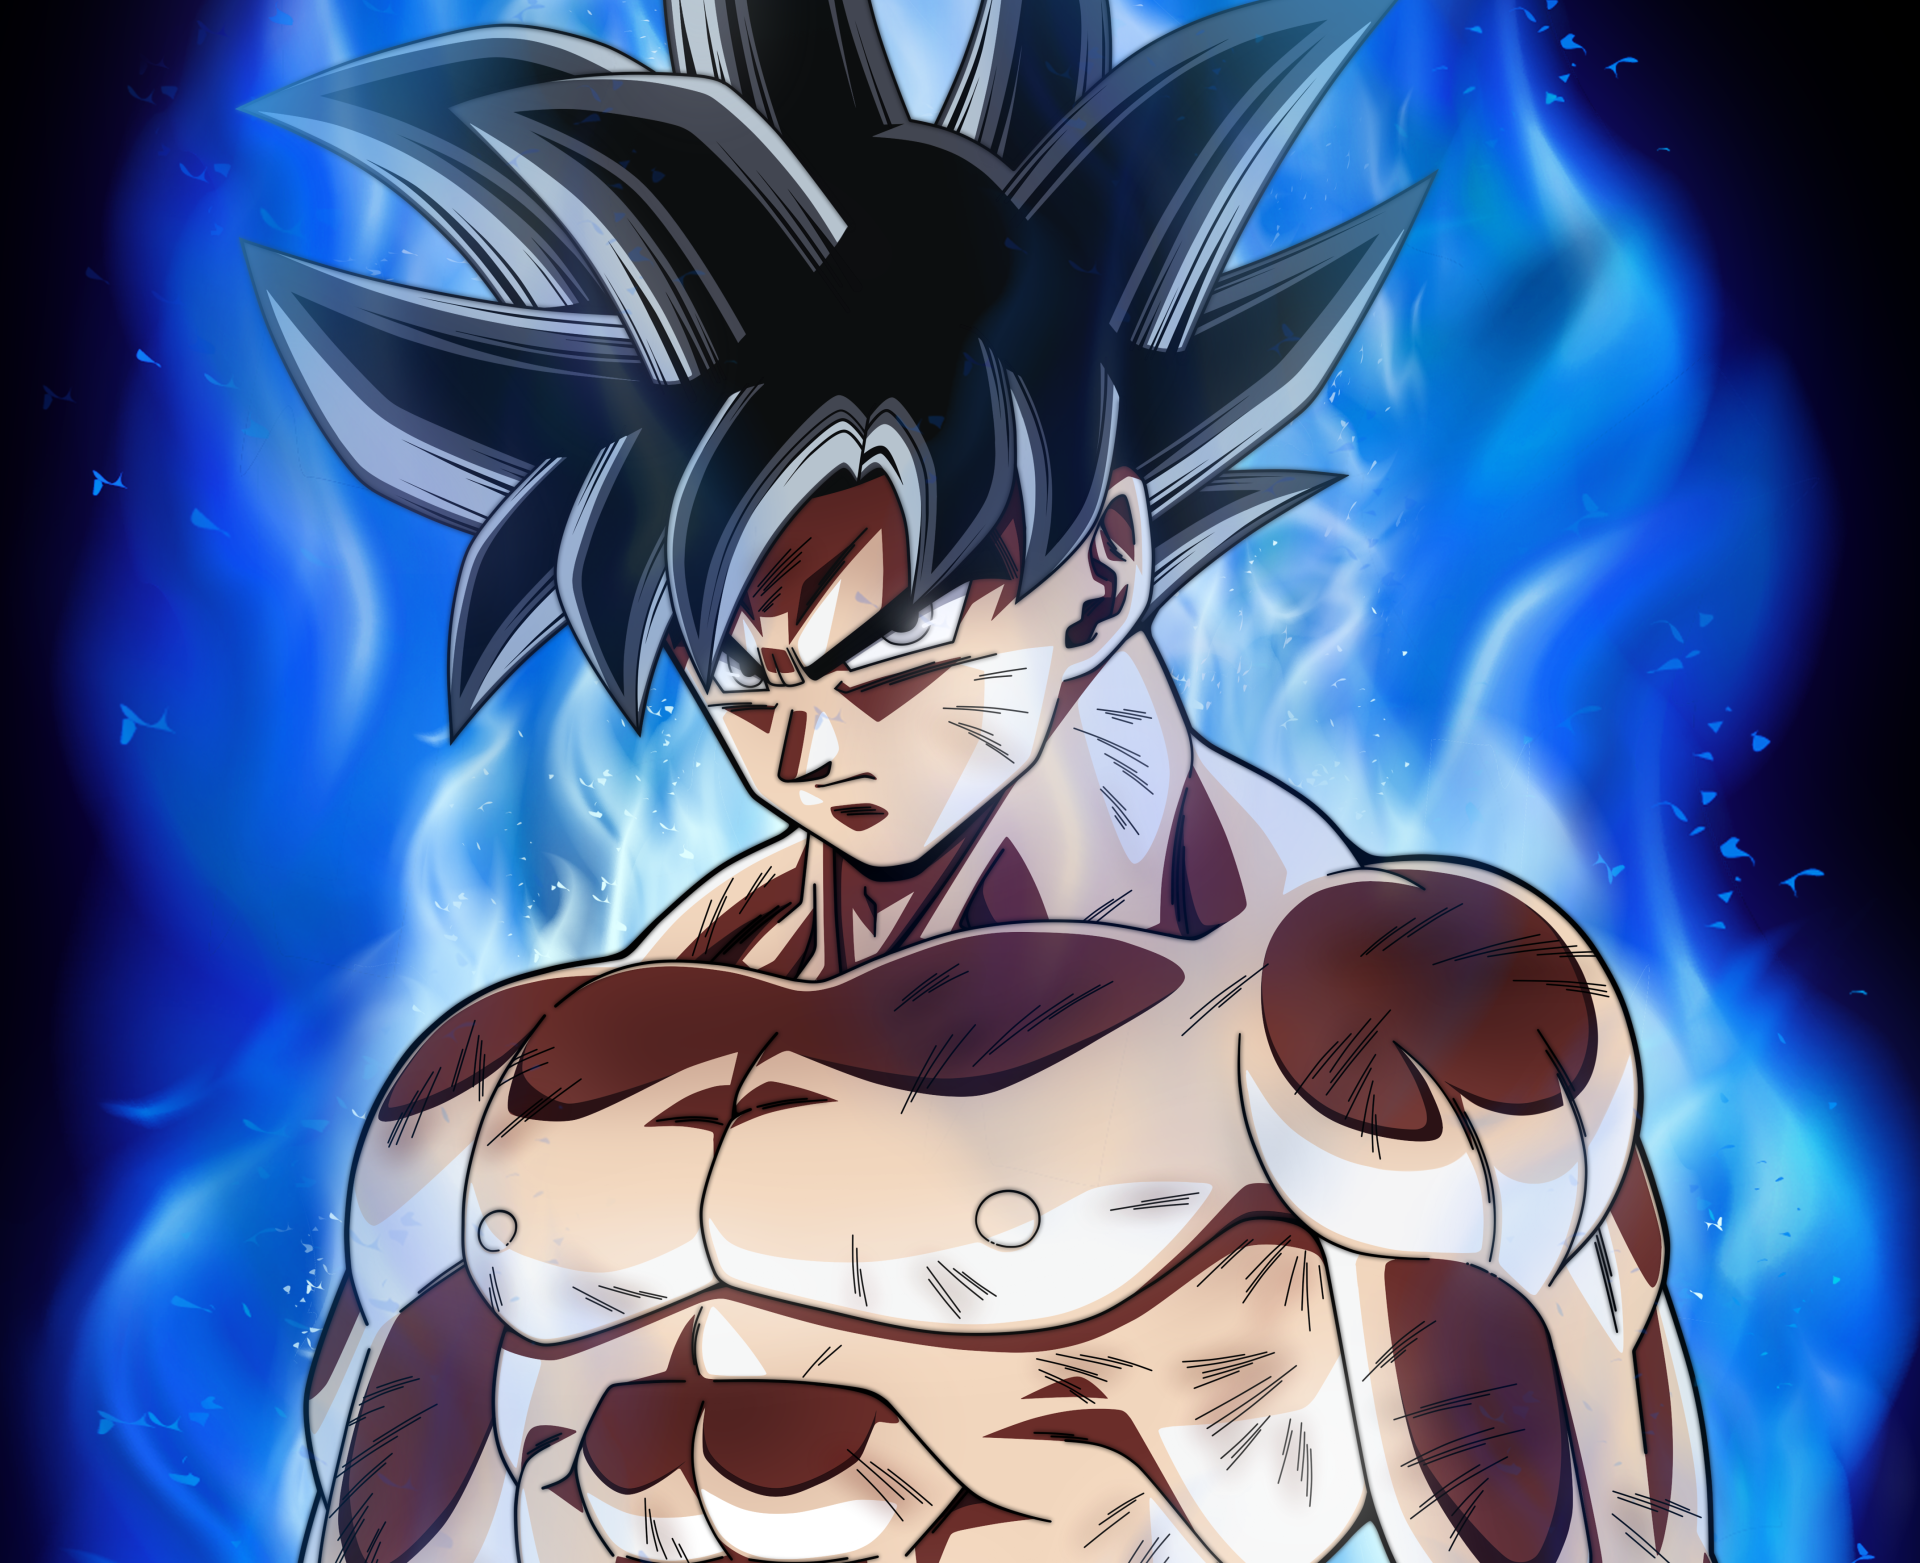 145 Ultra Instinct Dragon Ball Hd Wallpapers Background Images Wallpaper Abyss